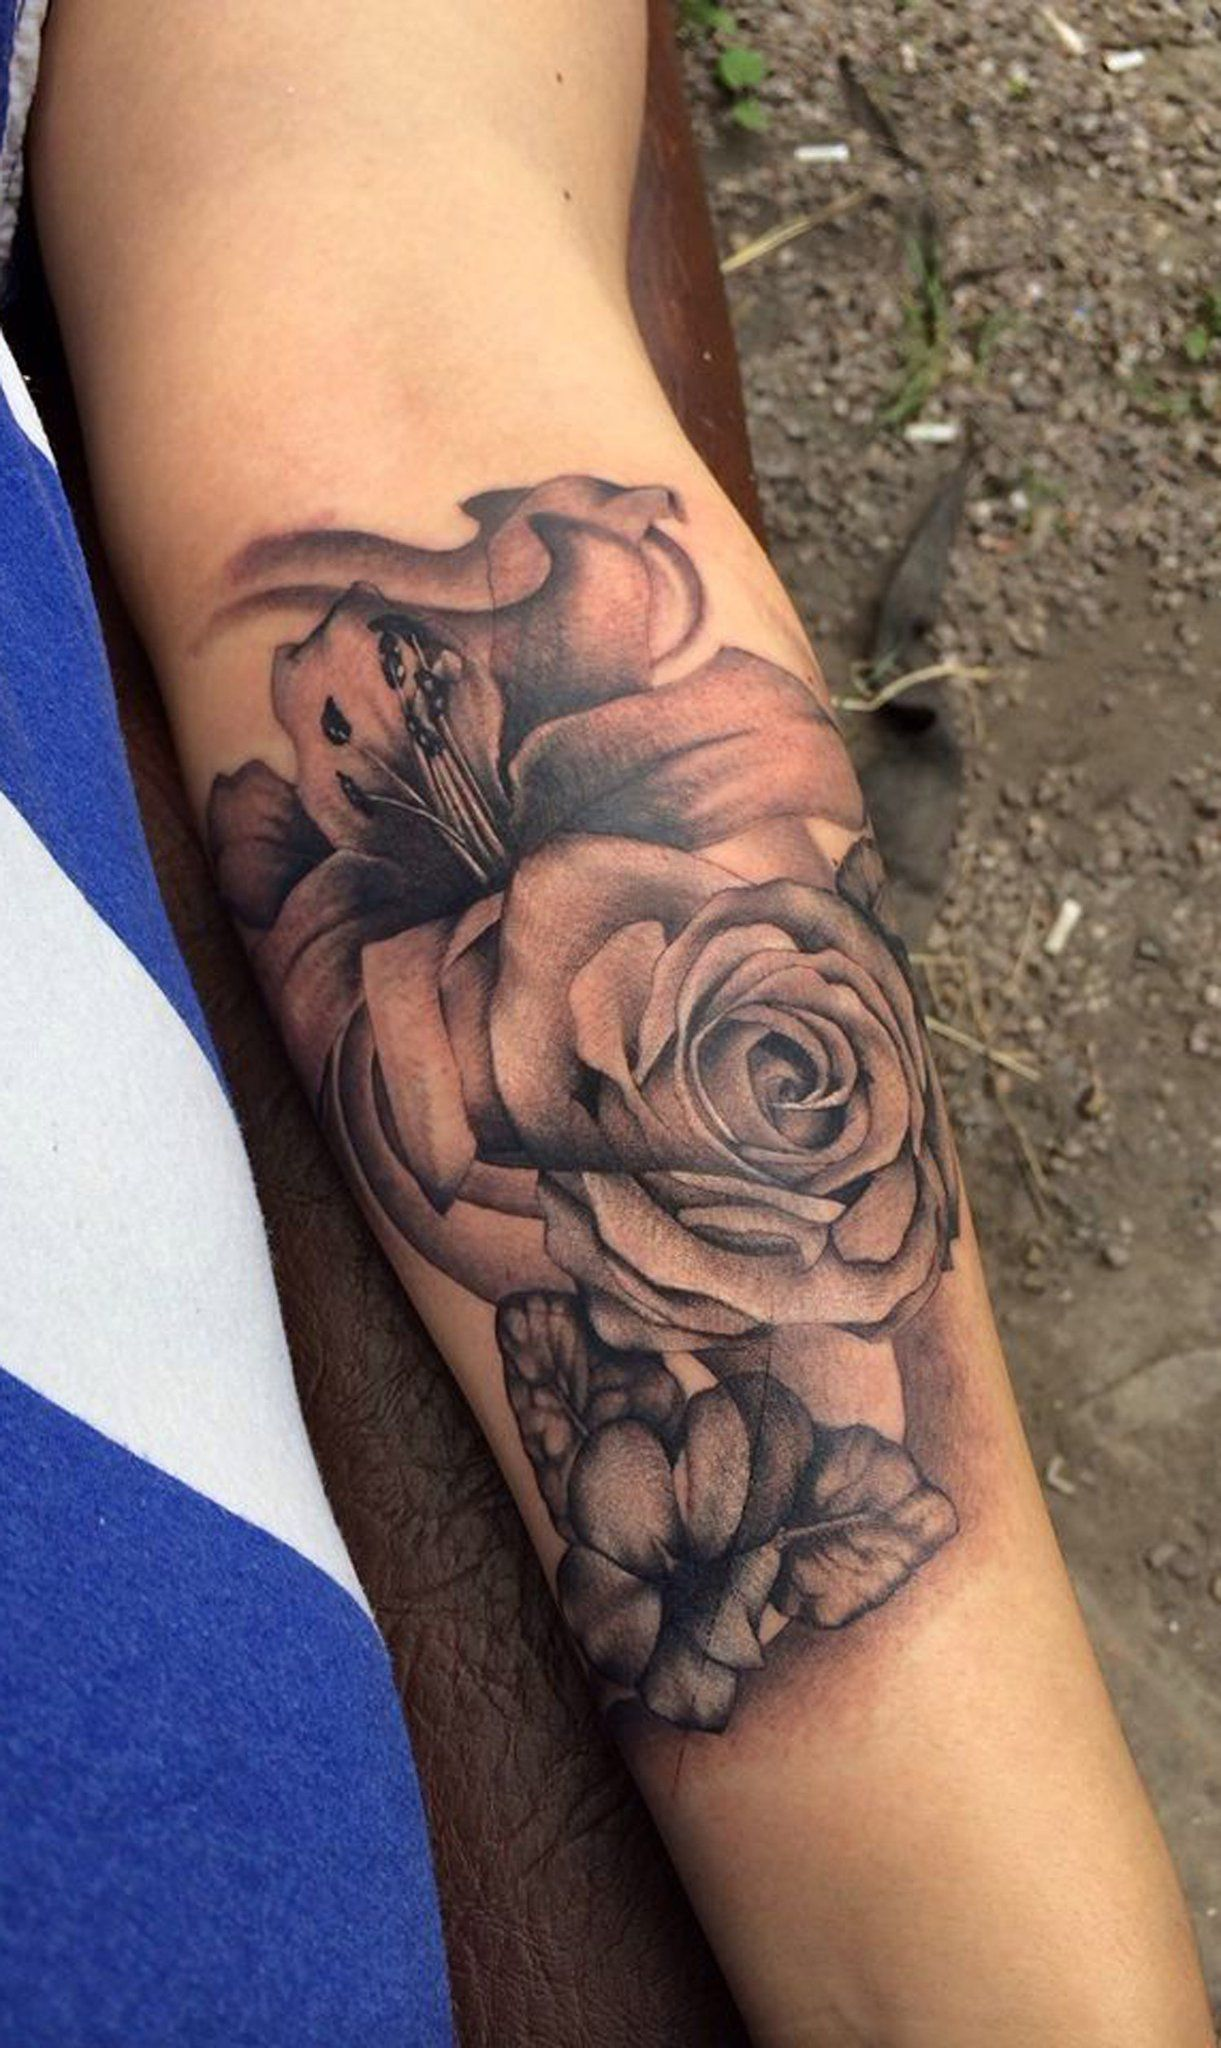 Black Vintage Rose Forearm Tattoo Ideas for Women - www.MyBodiArt ...